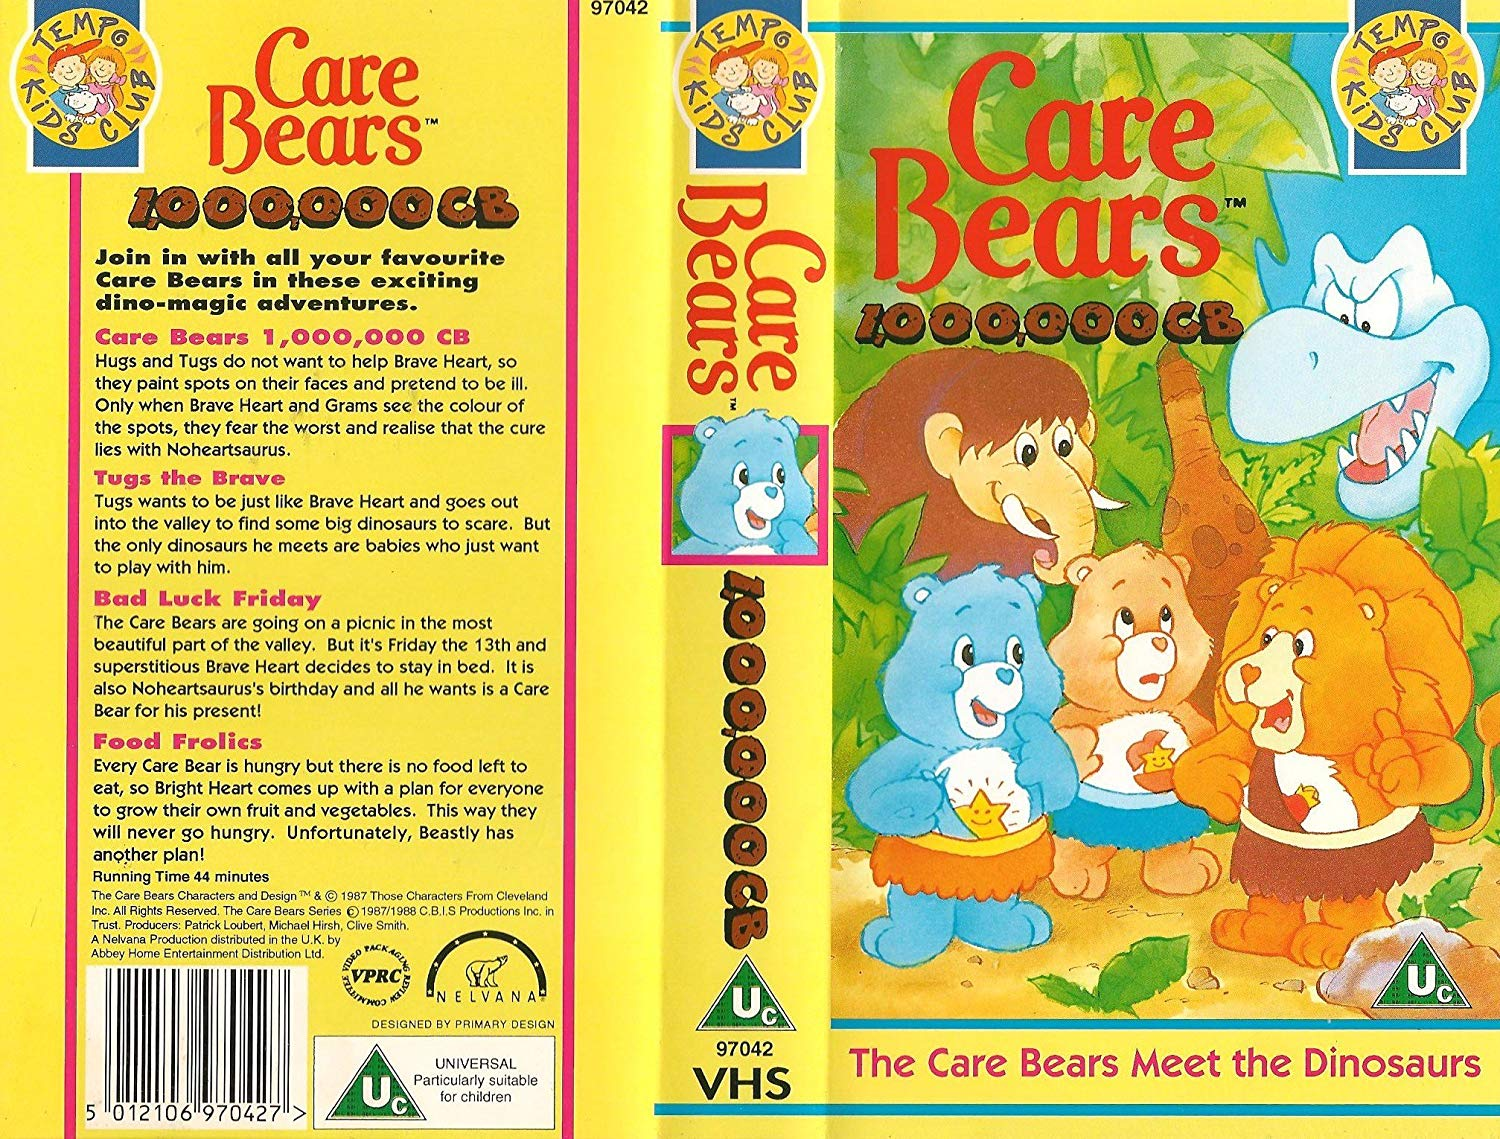 Care Bears - 1,000,000 CB